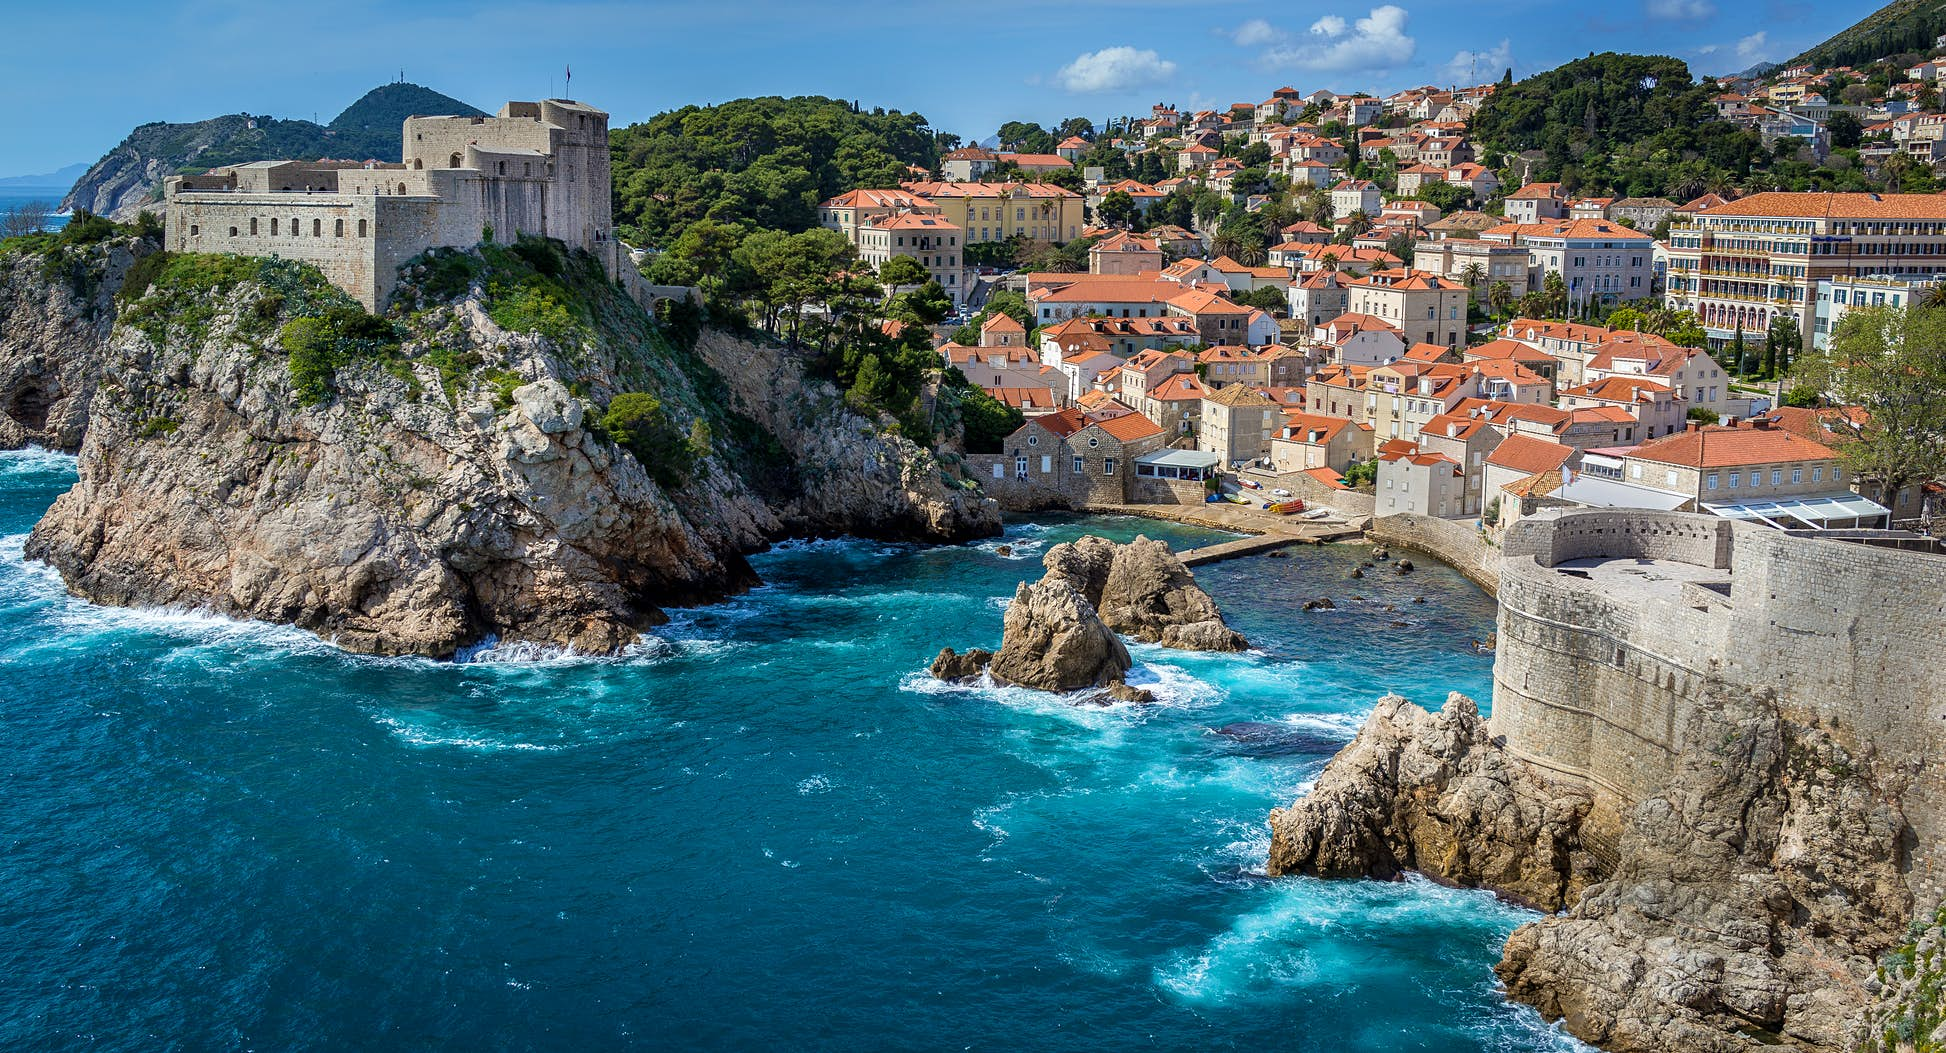 The cruise will stop along the beautiful coasts of Croatia, including Dubrovnik ©Cory Schadt/500px